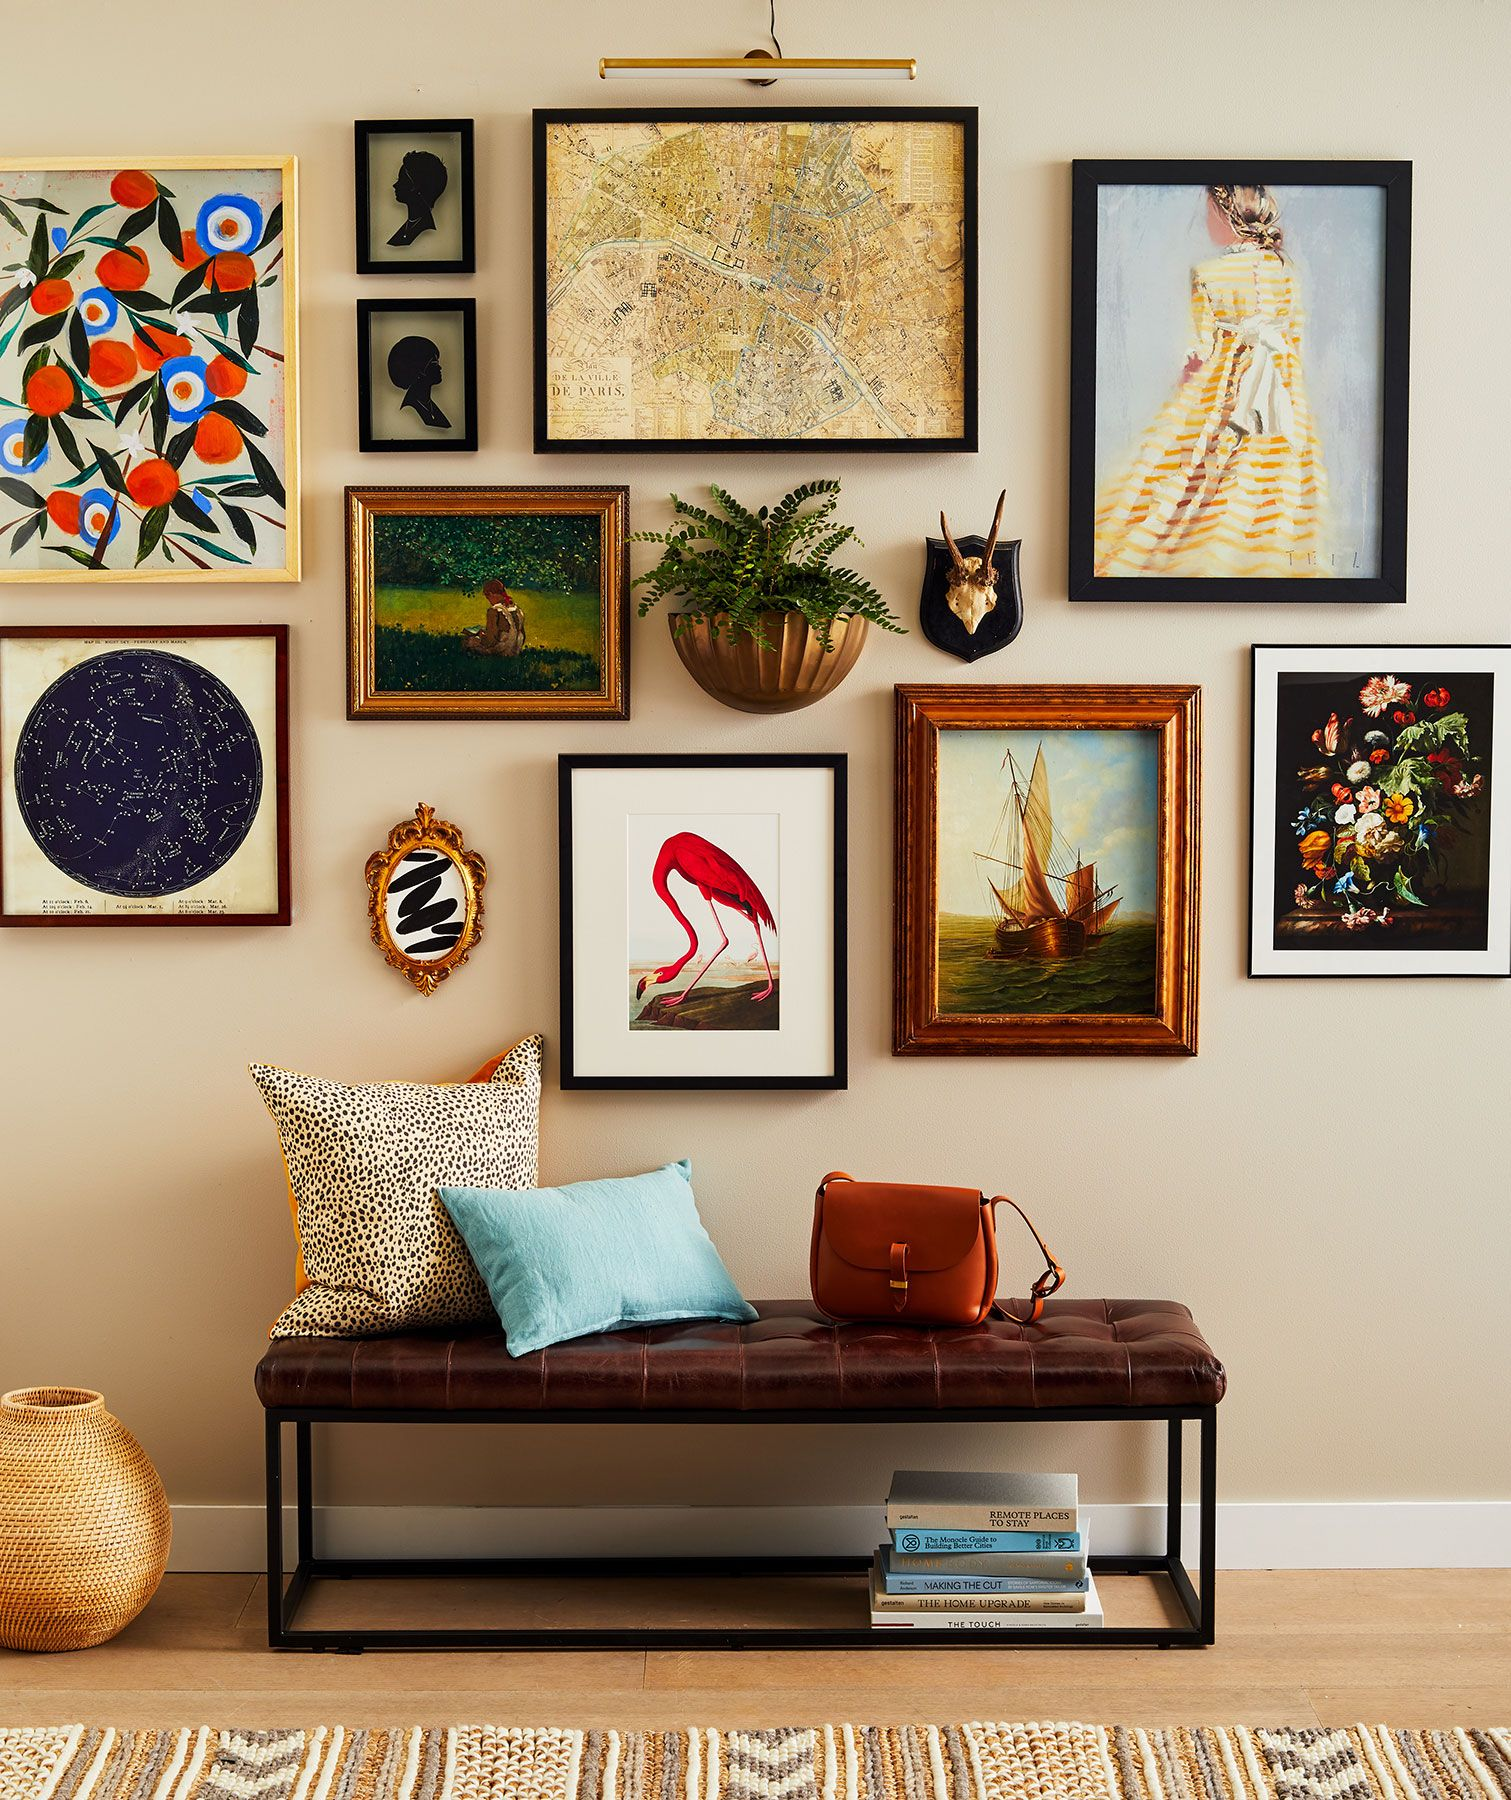 Pin on Our Best Home Decorating Ideas